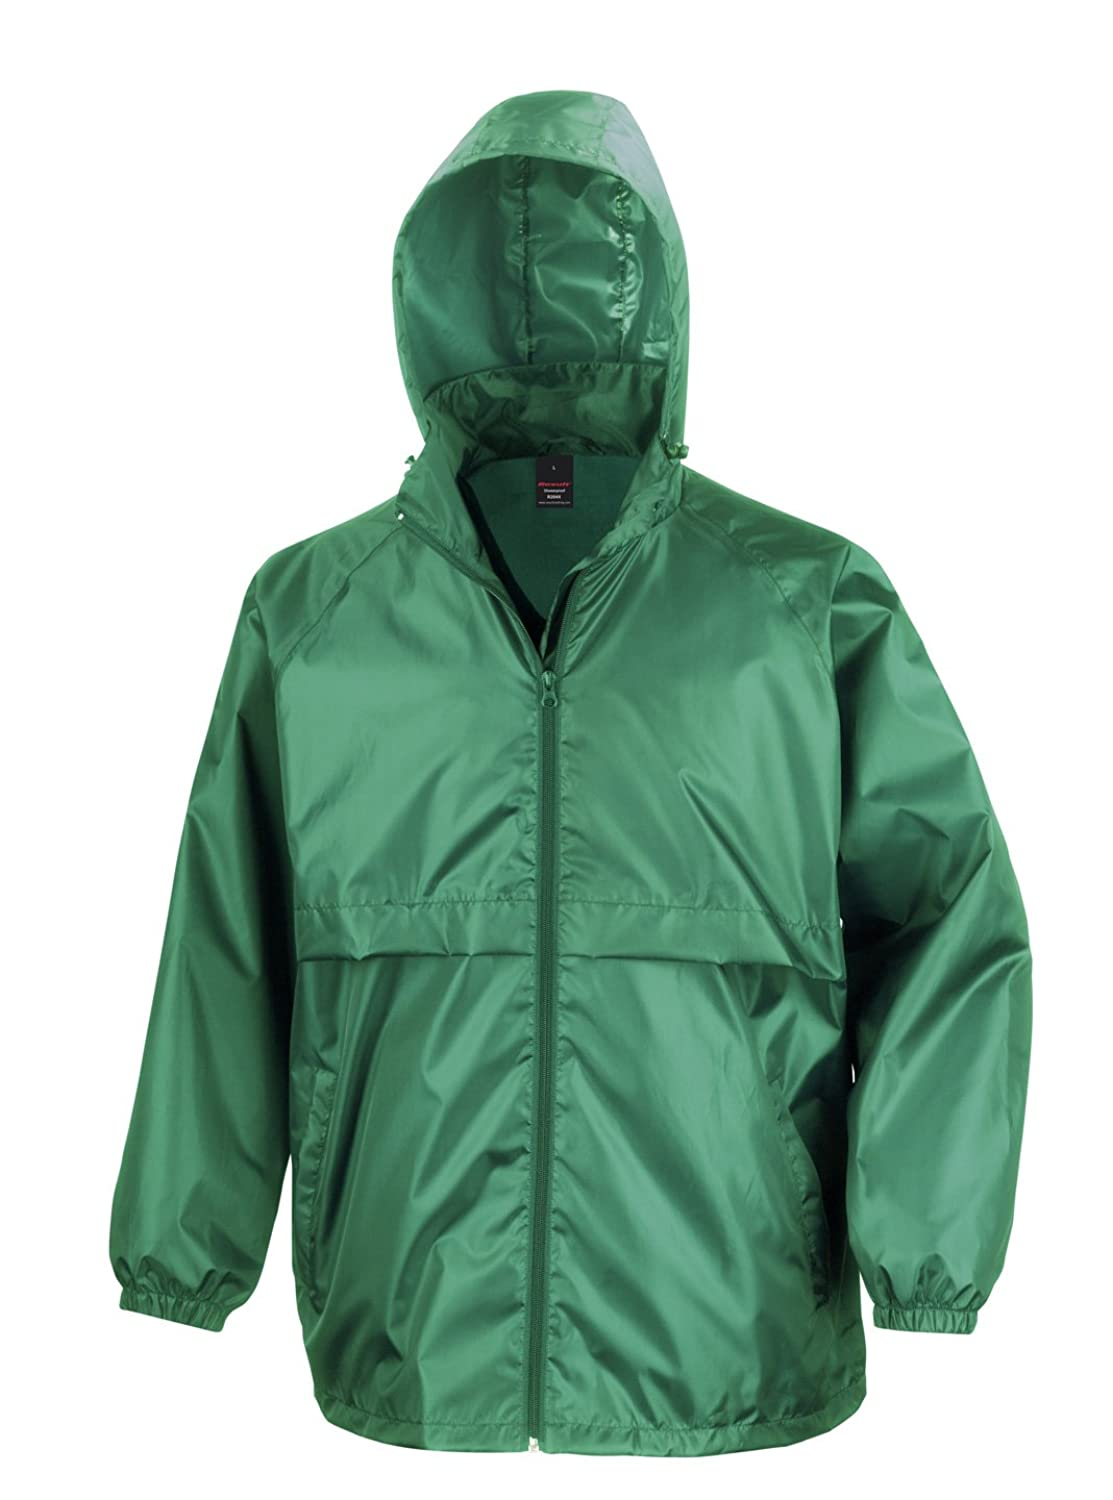 Result Core Adult Windcheater-Emerald-sizeM günstig kaufen